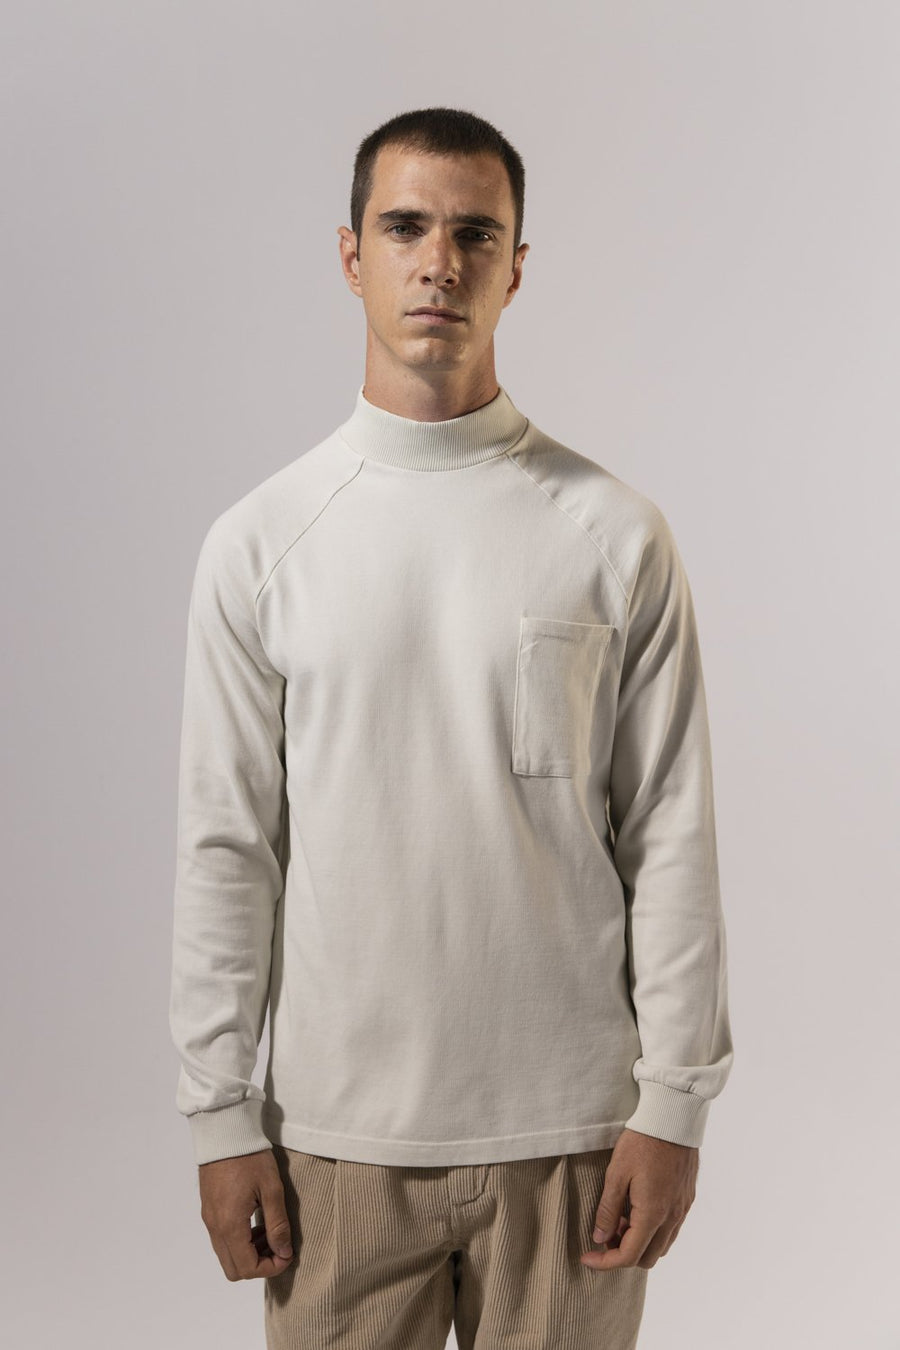 Unfeigned Gear Long Sleeve Smock Neck T-Shirt - Bone White